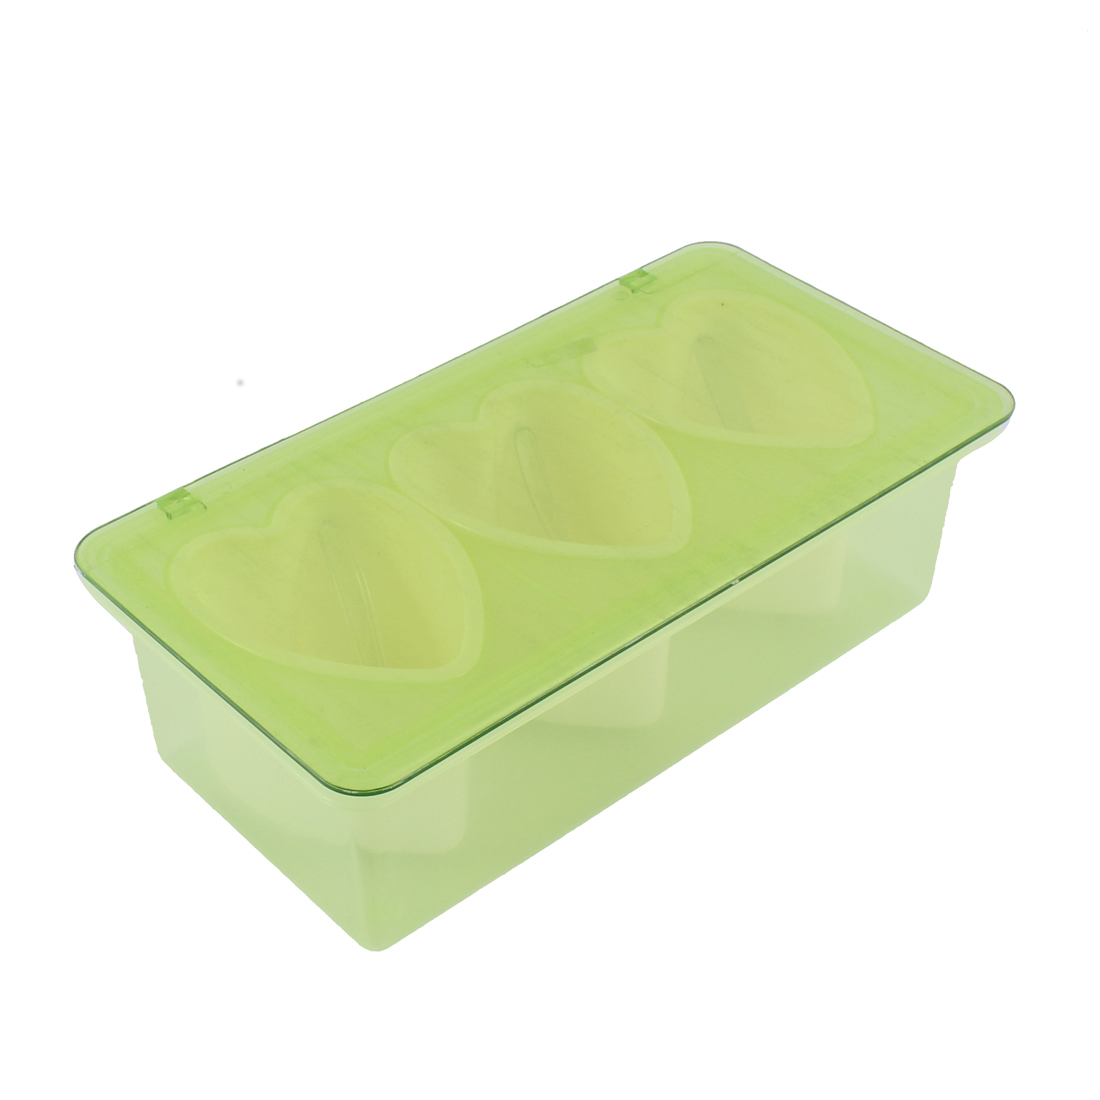 Heart Shape 3 Compartments Condiment Holder Container Dispenser Tray Green